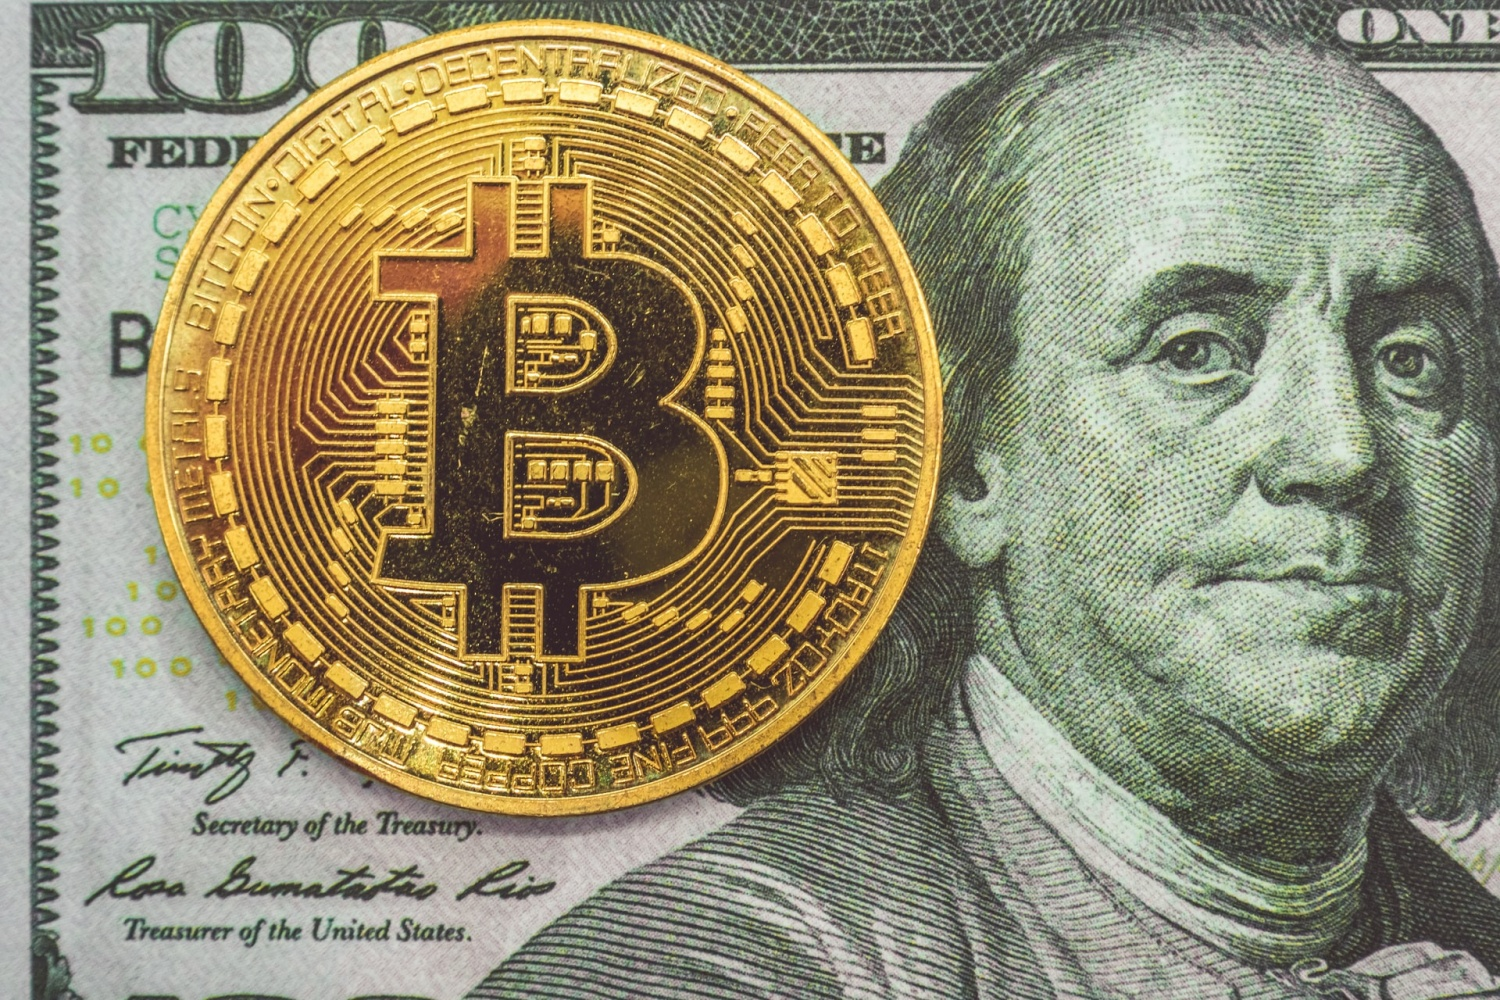 Bitcoin Price Prediction: More Current Losses Will Not Stop Dollar 'Overtake' By 2050, $66,000 Increase Possible This Year